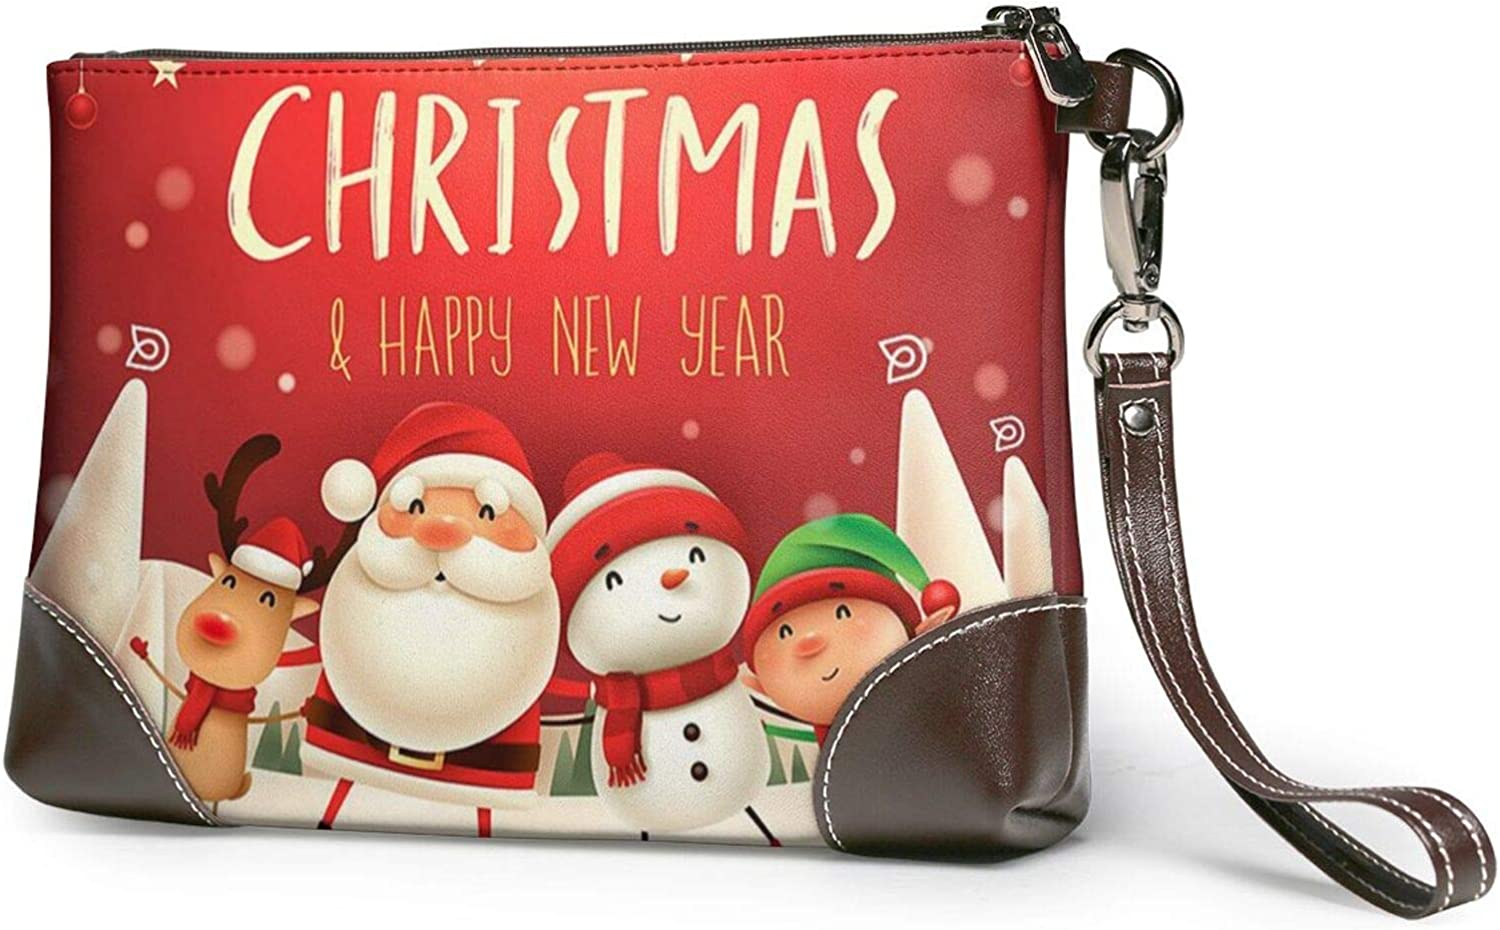 Merry Christmas Clutch Purses Wallet Wristlet Import Leather Sales of SALE items from new works Pur